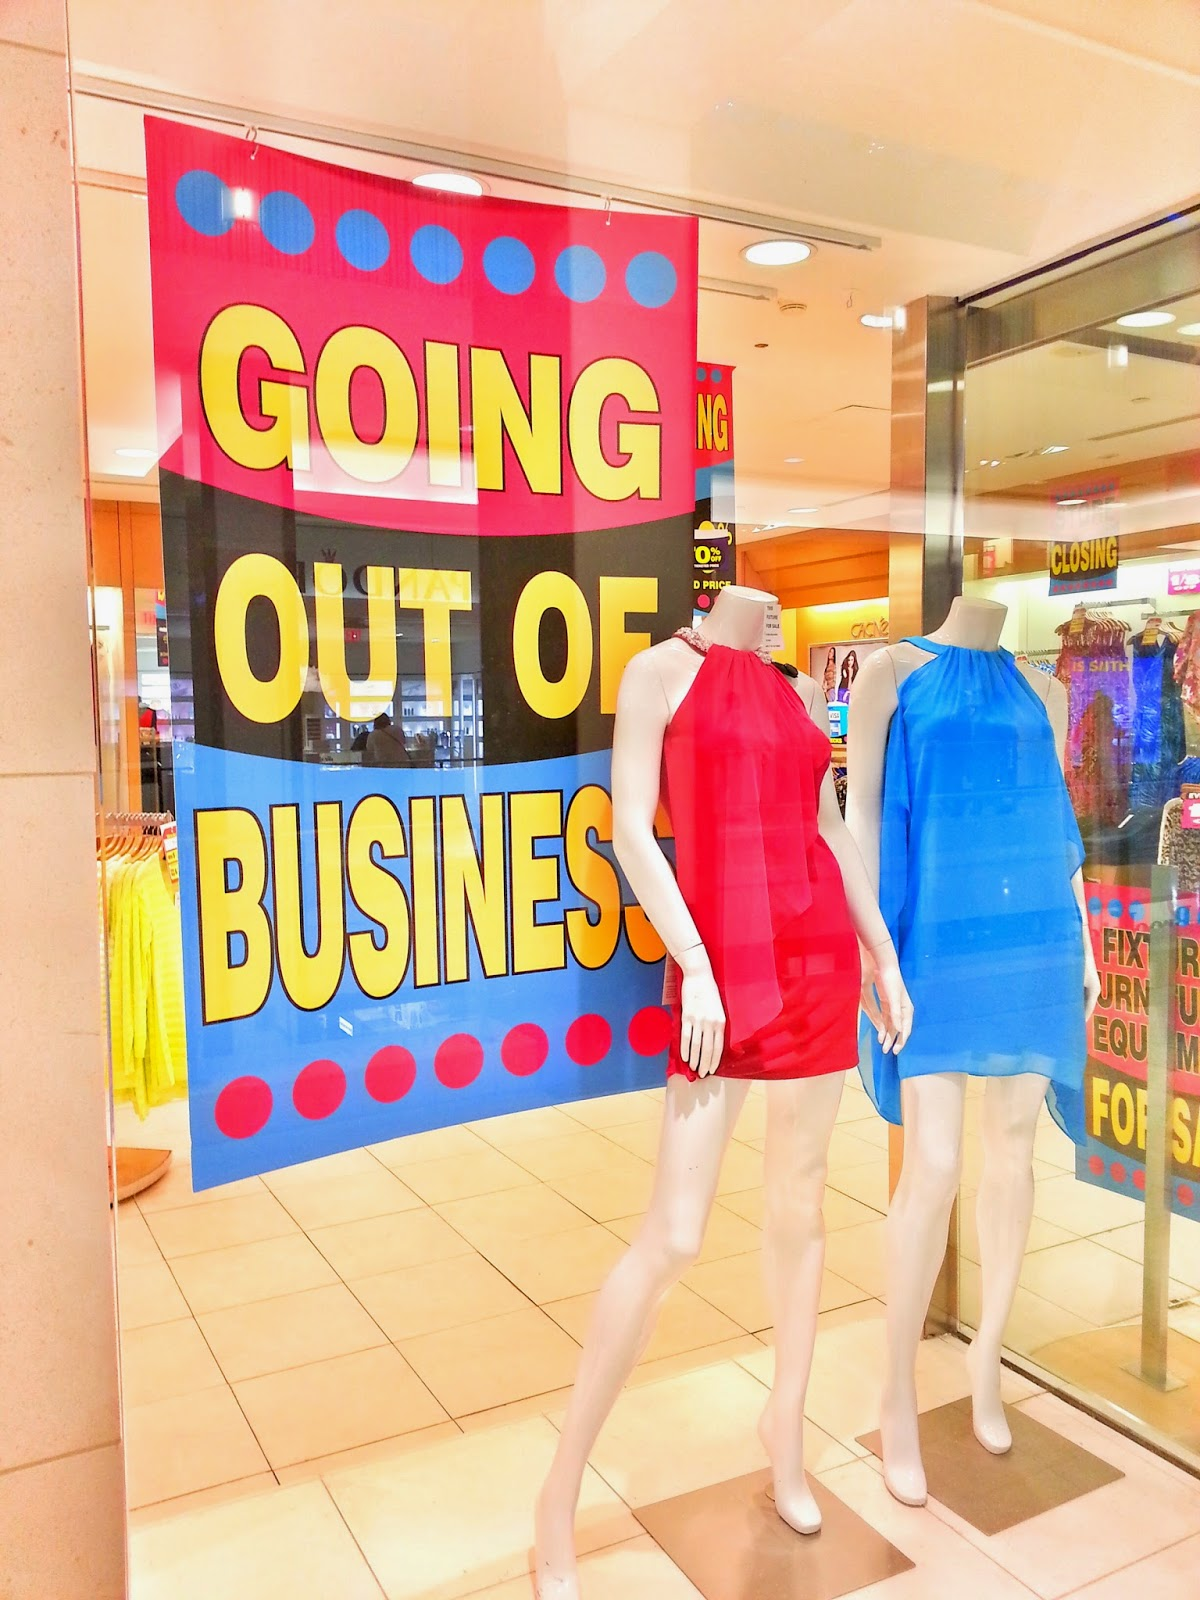 Robert dyer bethesda row cach closing at westfield montgomery if you have a cach gift card you must act on it by sunday april 5 the company will no longer honor its gift cards after sunday colourmoves Image collections